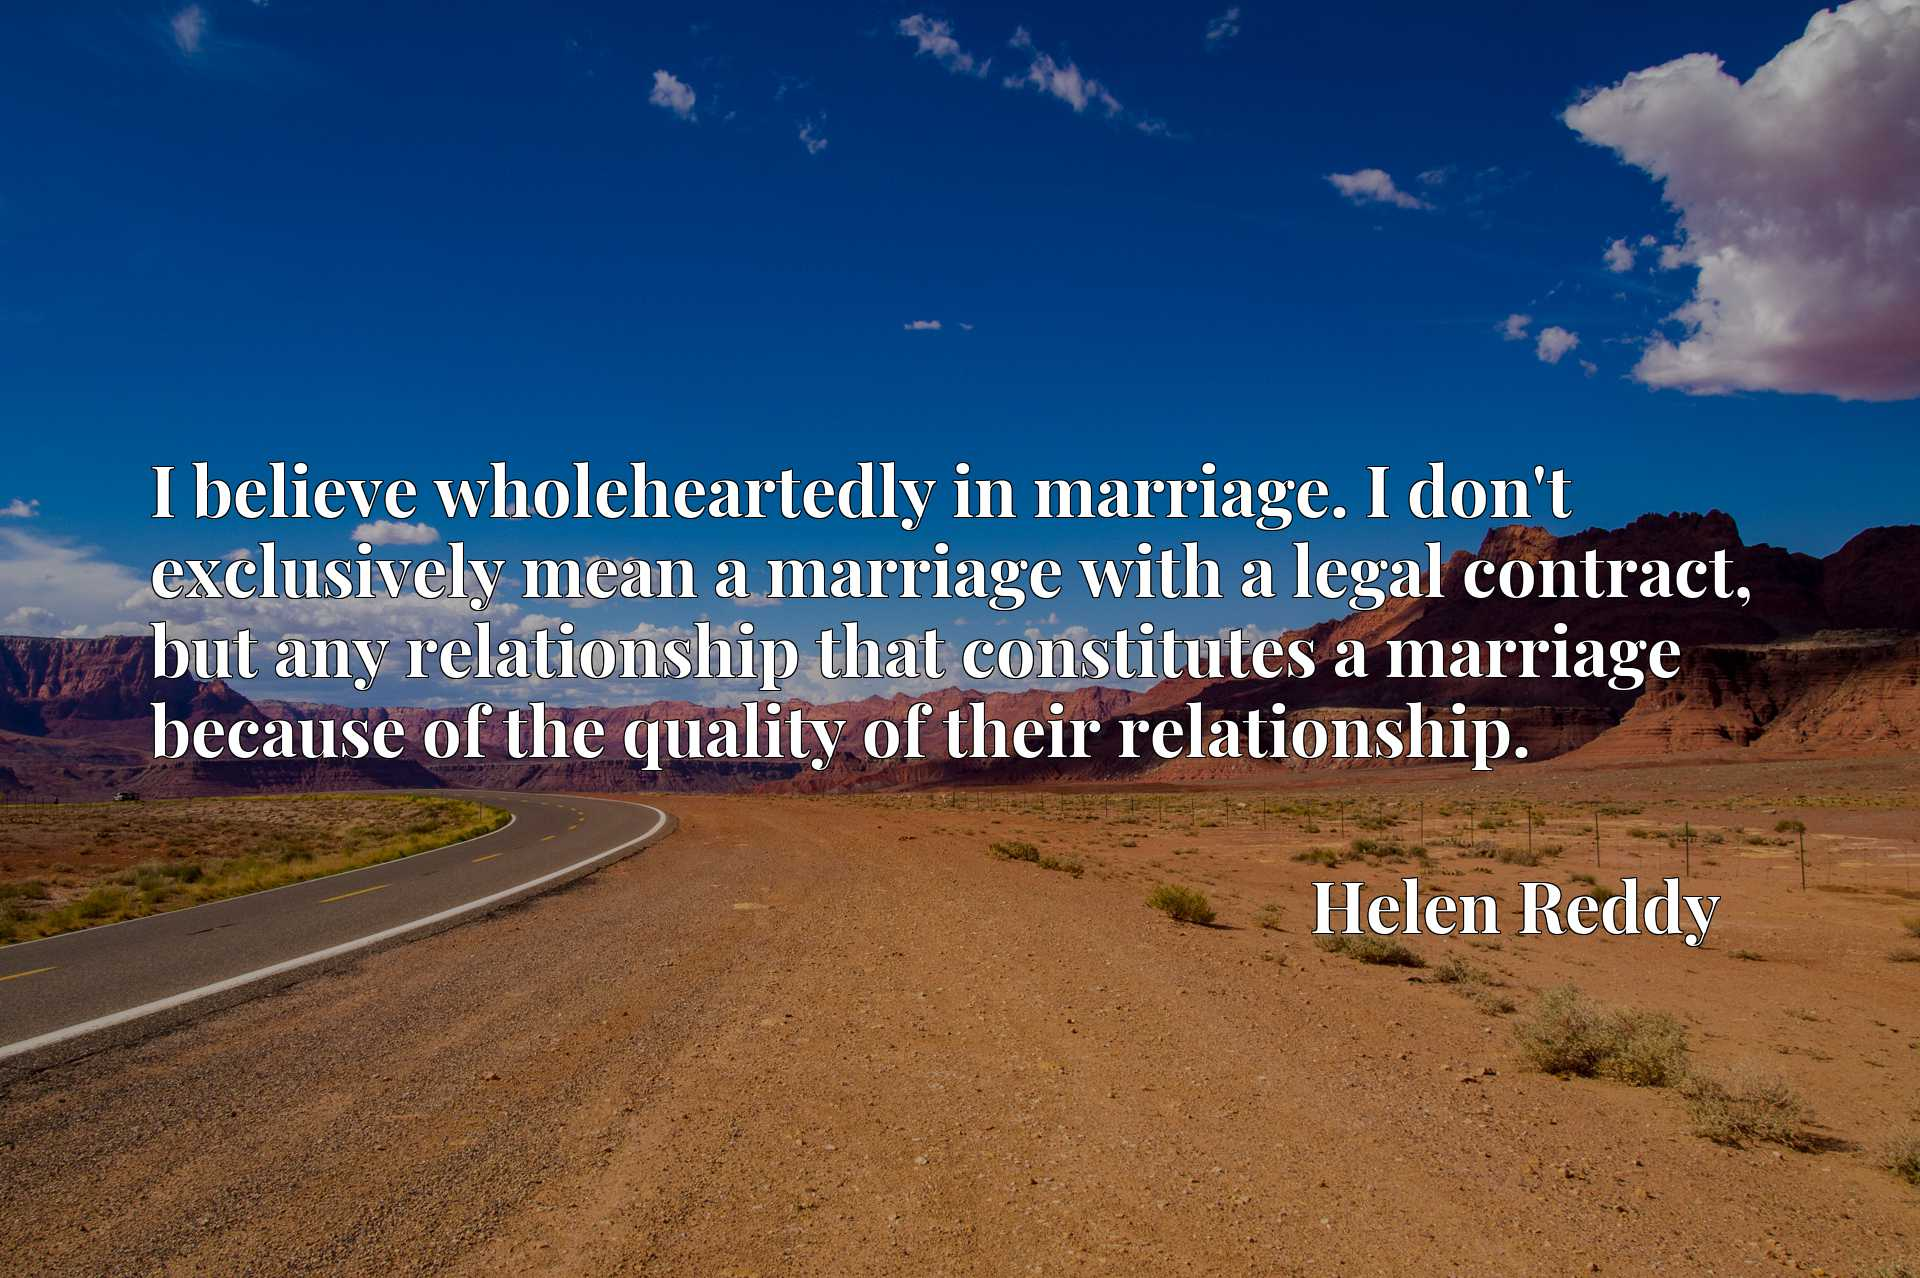 I believe wholeheartedly in marriage. I don't exclusively mean a marriage with a legal contract, but any relationship that constitutes a marriage because of the quality of their relationship.